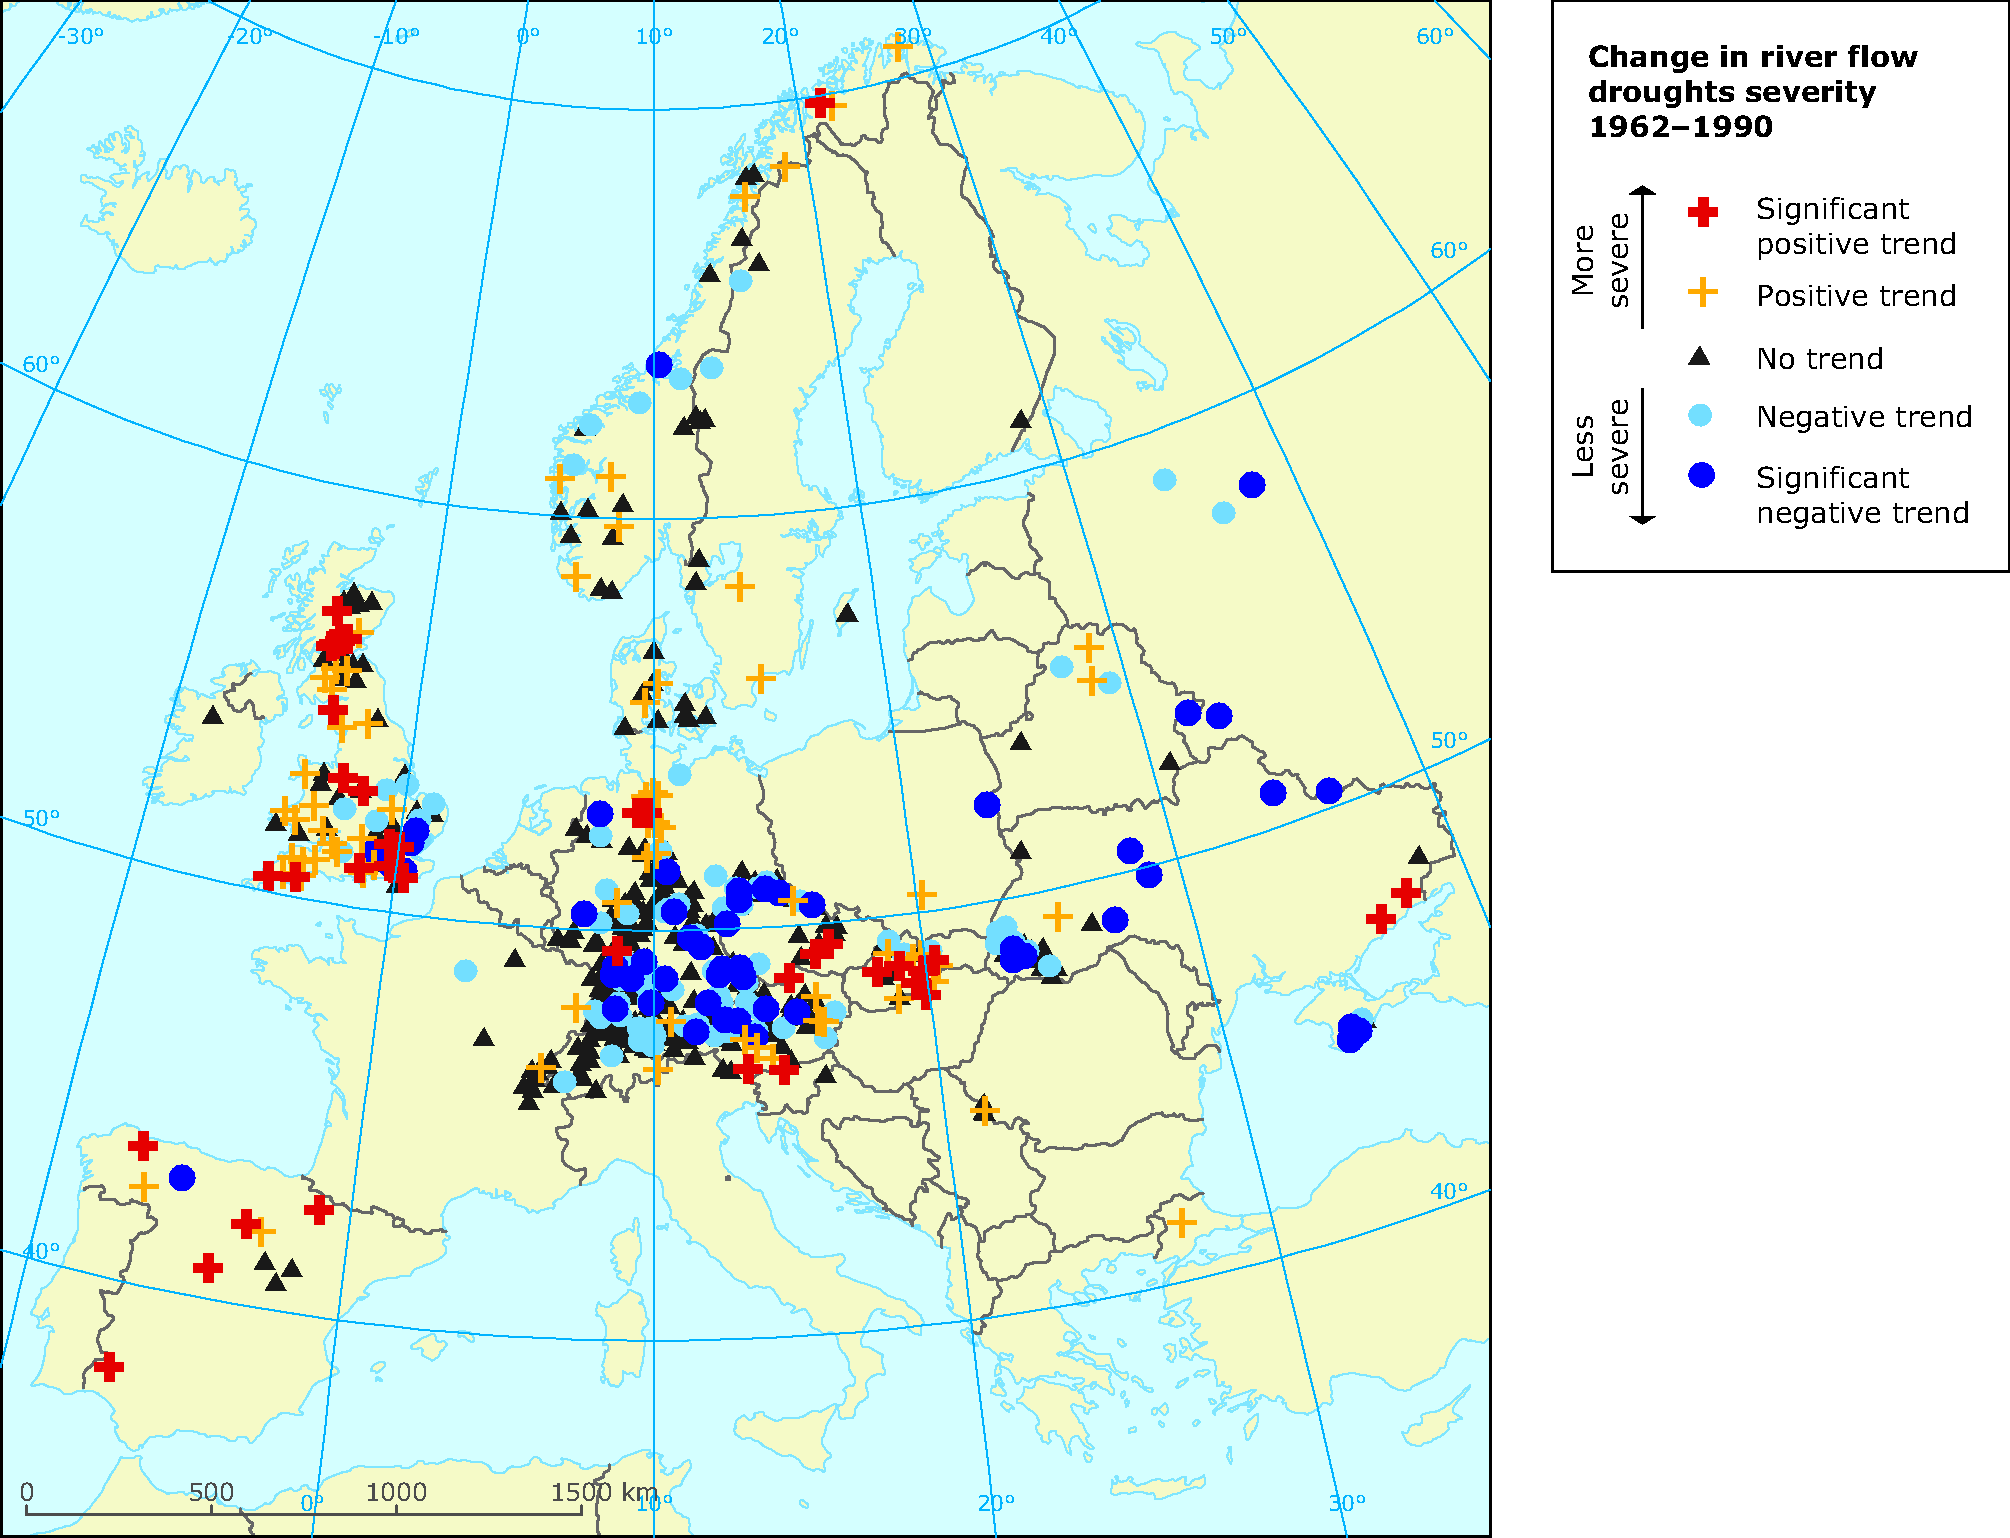 Change in the severity of river flow droughts in Europe 1962-1990